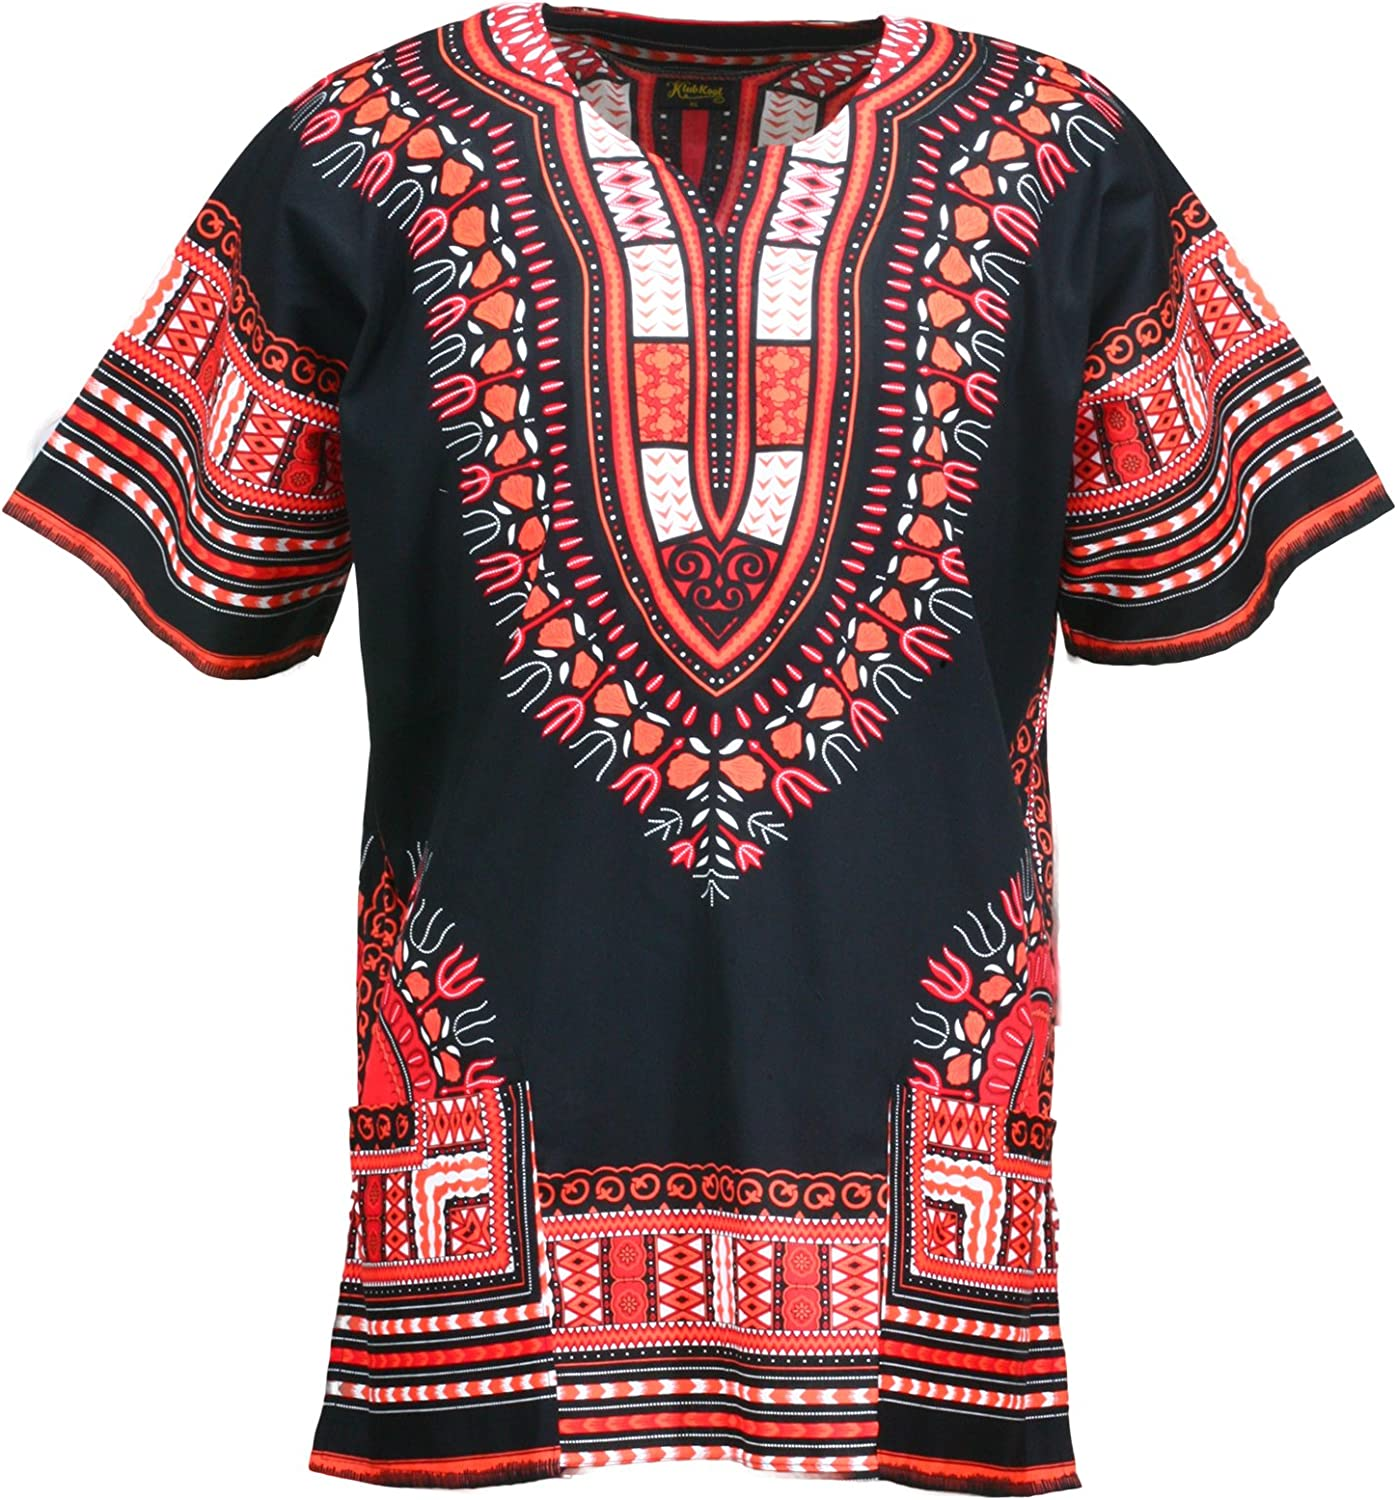 Hippie Dress | Long, Boho, Vintage, 70s KlubKool Dashiki Shirt Tribal African Caftan Boho Unisex Top Shirt $12.50 AT vintagedancer.com